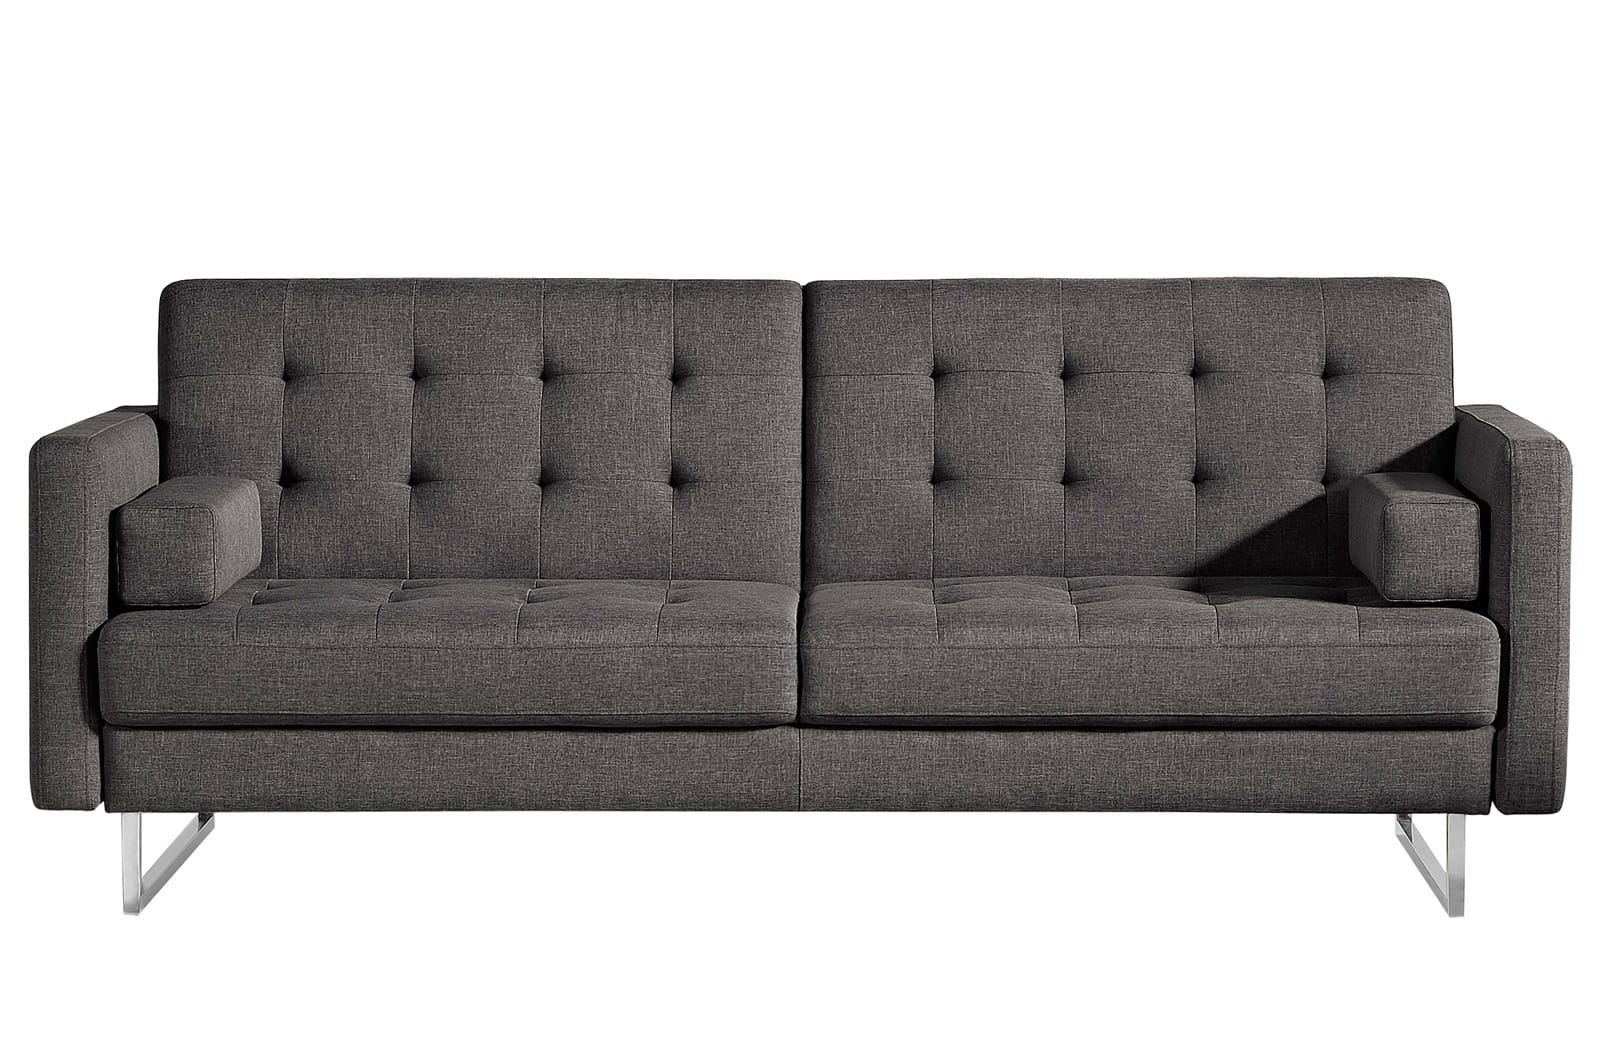 sofa sleeper chicago black velvet bed corduroy luxury fabric sectional